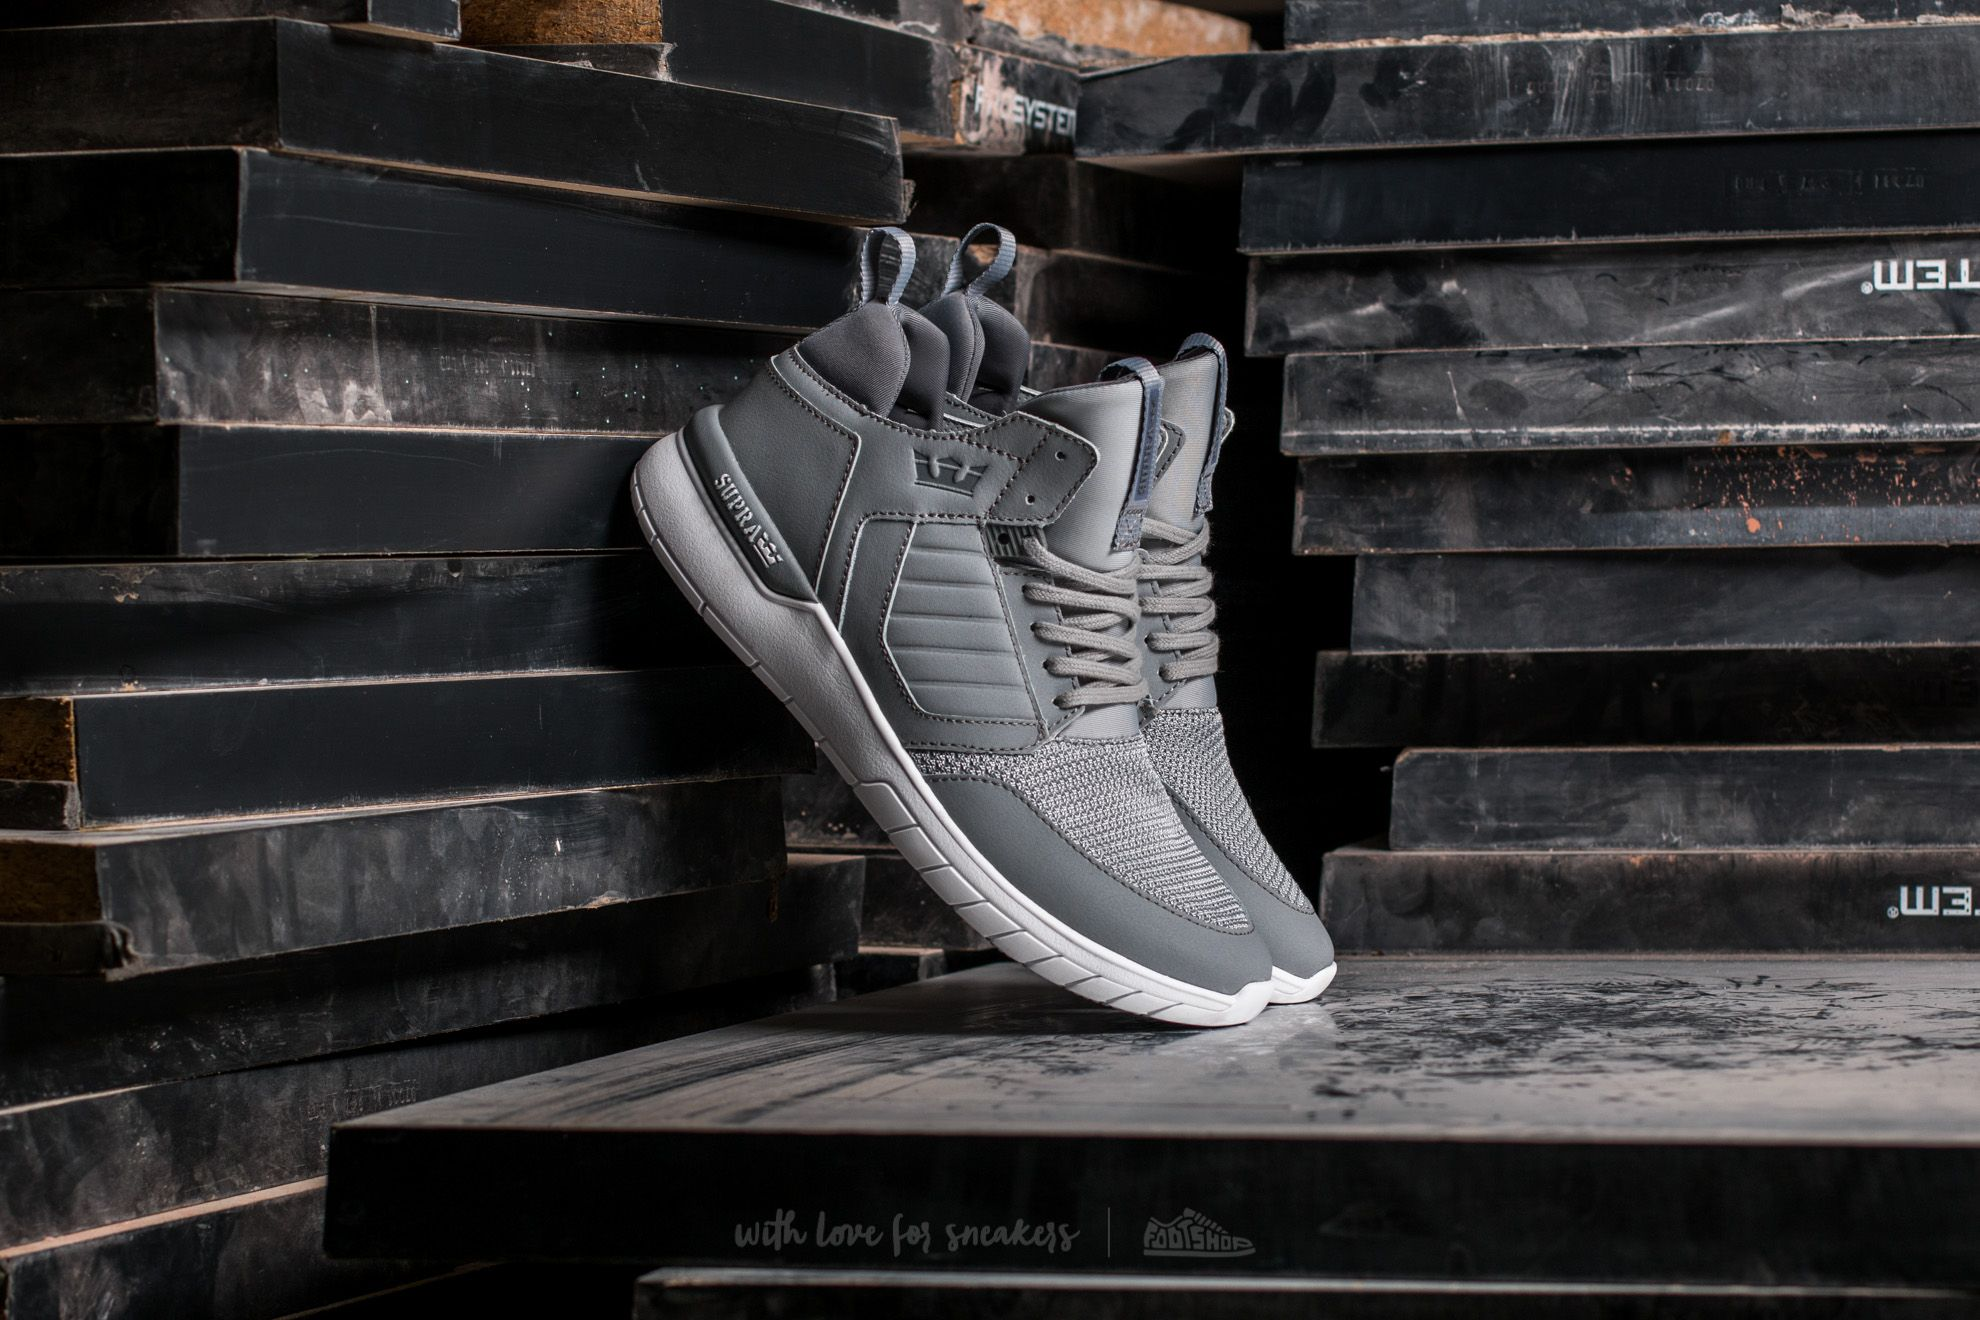 Supra Method Light Grey-White